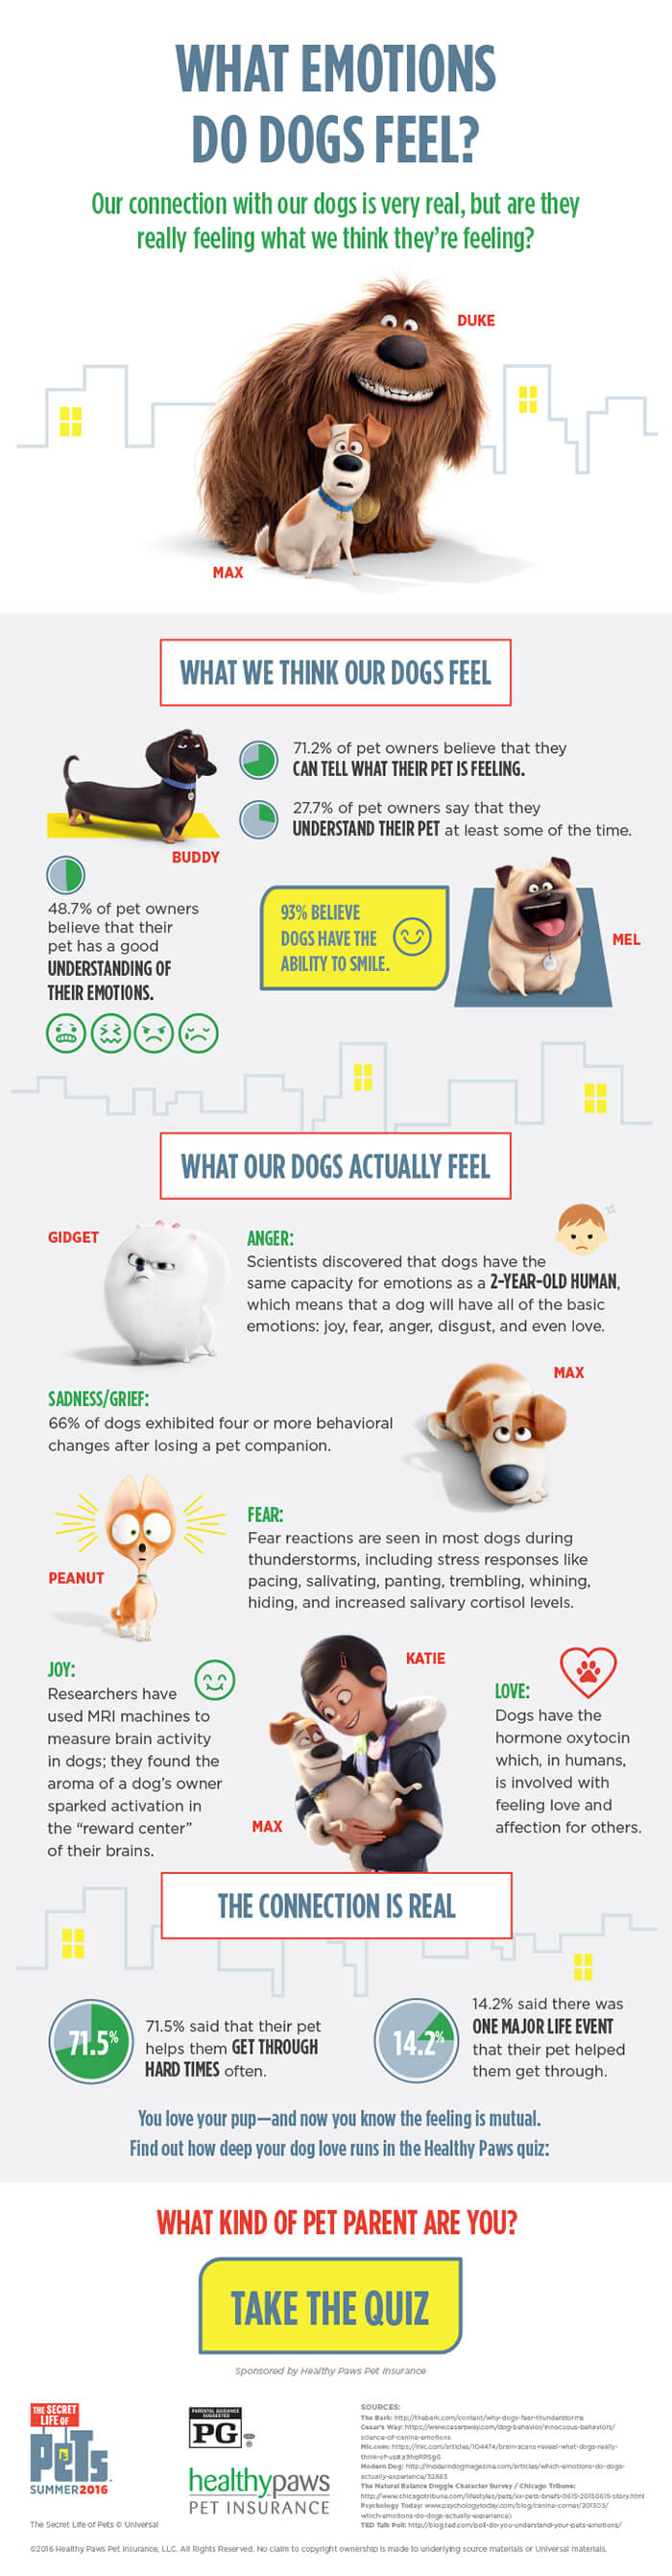 Healthy Paws Pet Insurance Reviews >> Emotions Dogs Feel [Infographic] | Healthy Paws